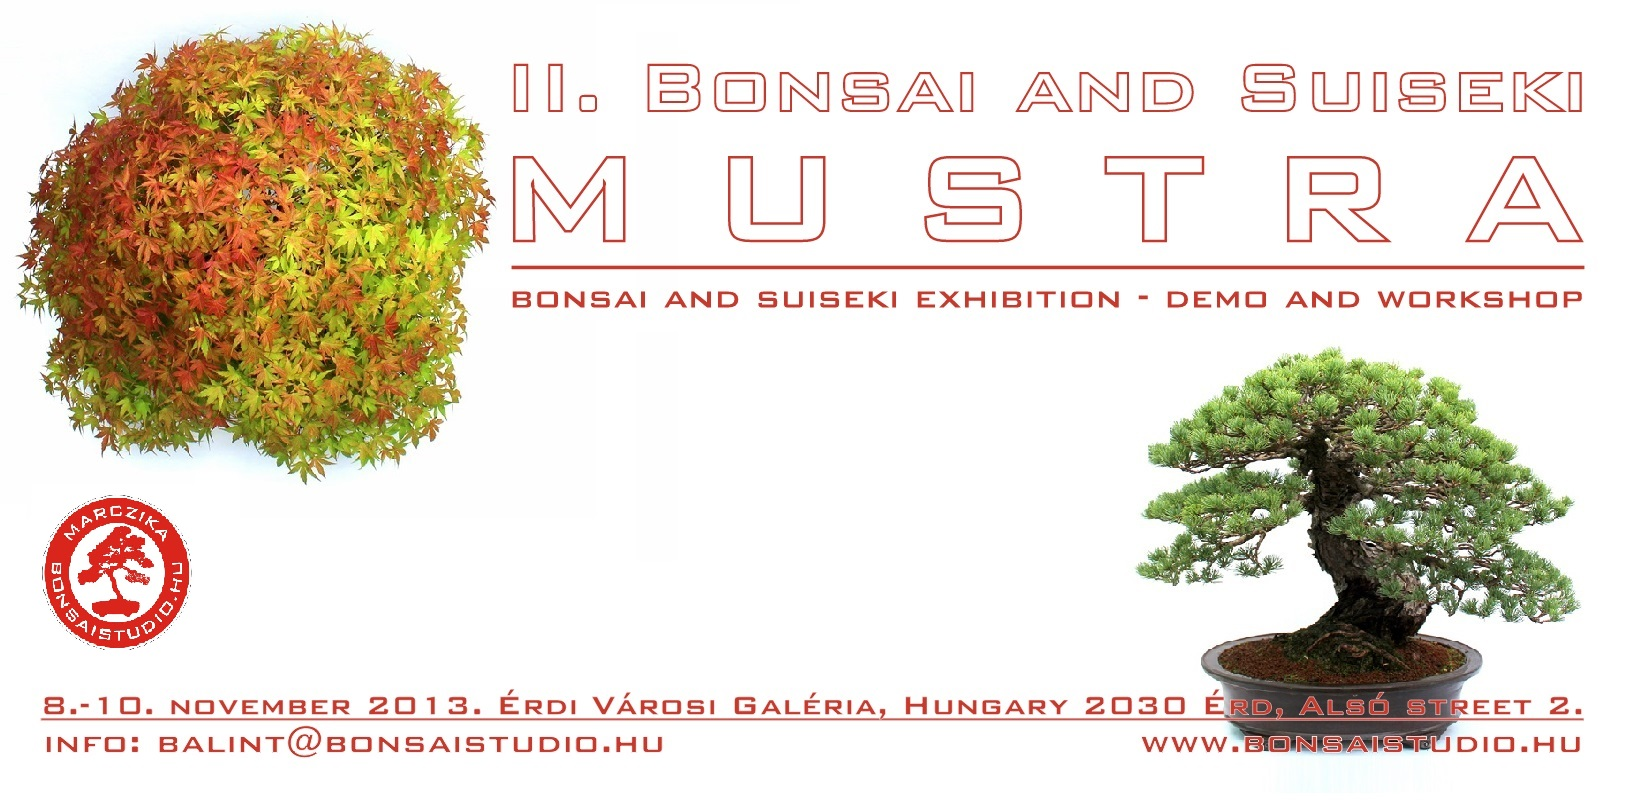 bonsai and suiseki mustra bonsaj and suiseki exhibition hungary erd marczika bonsai studio